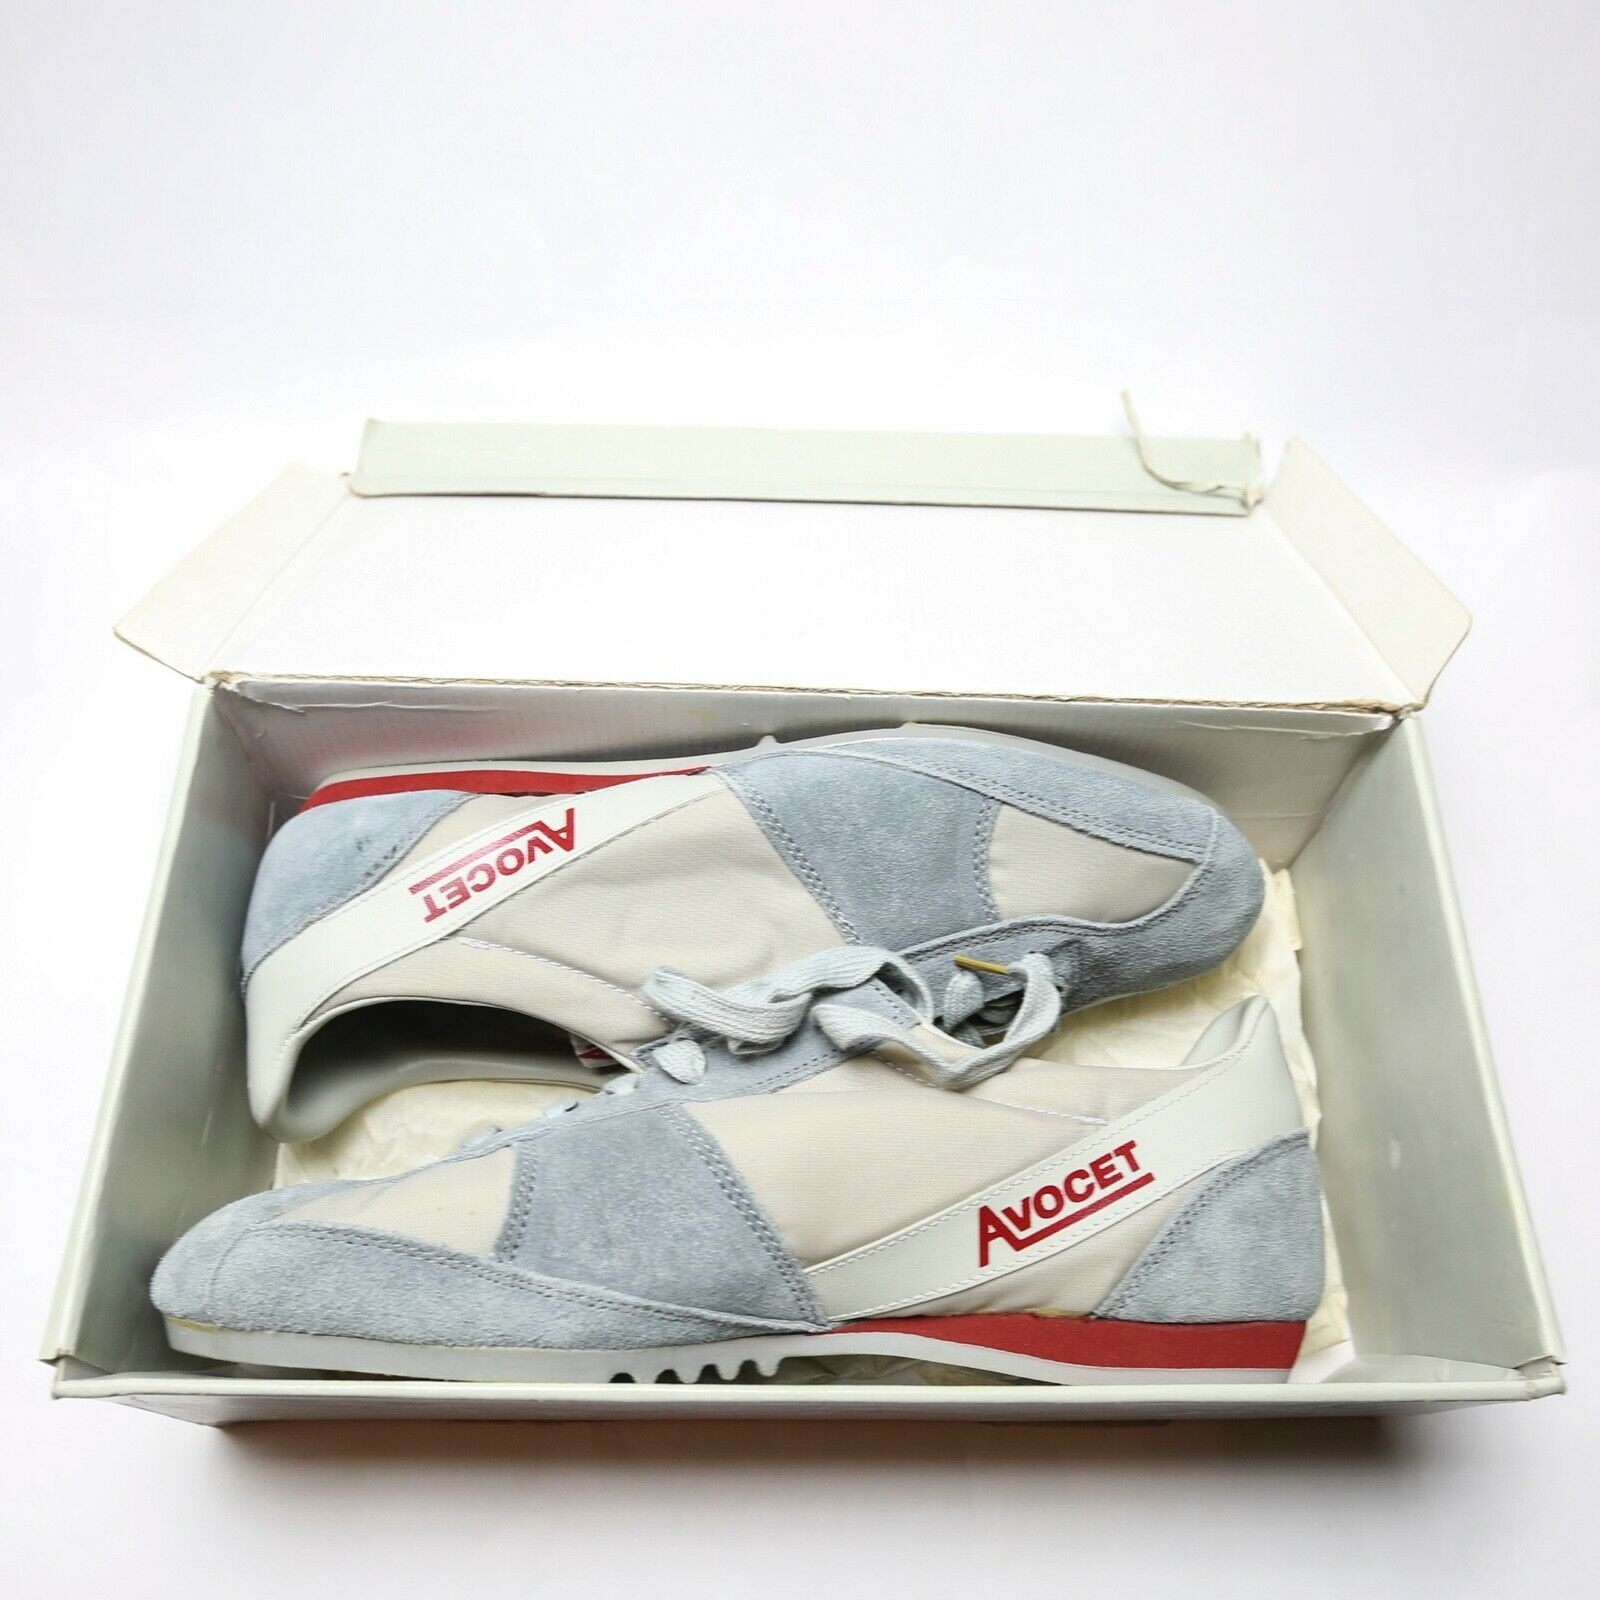 Rare Avocet Model 20 Cycle Touring schuhe Größe 10 In Box